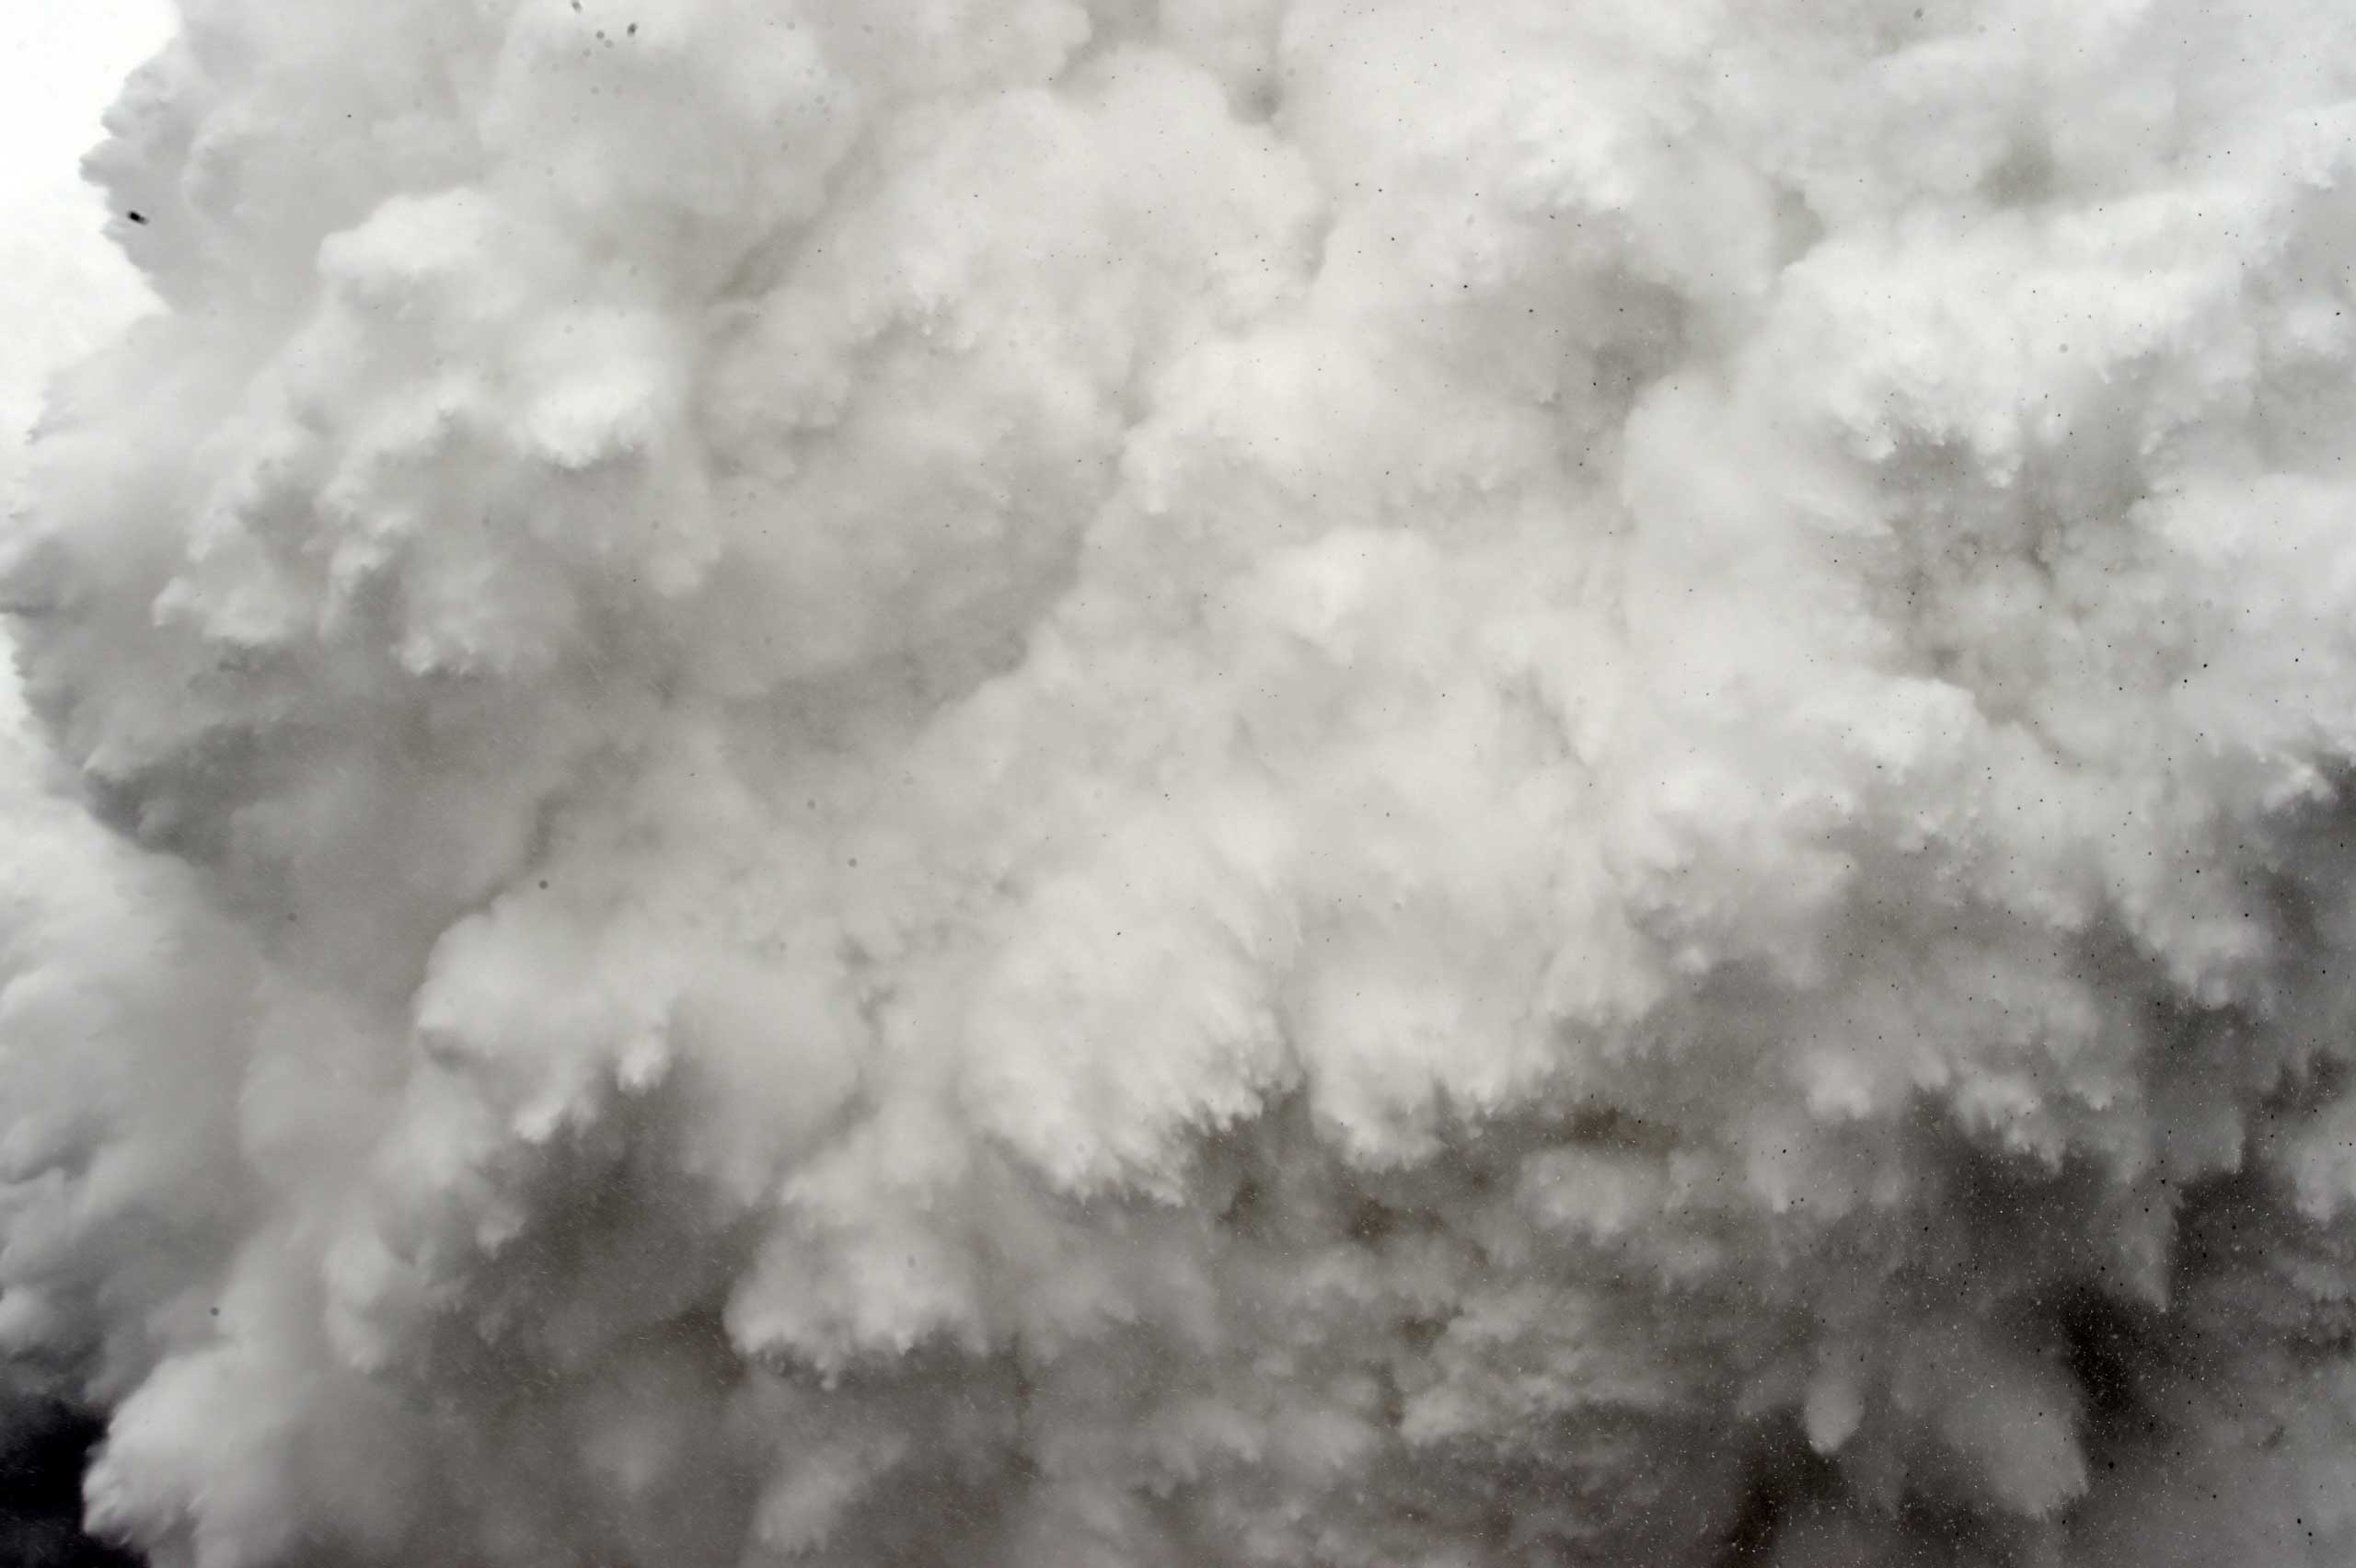 A cloud of snow and debris triggered by an earthquake flies towards Everest Base Camp, moments ahead of flattening part of the camp in the Himalayas.   Rescuers in Nepal search frantically for survivors of a huge quake that killed nearly 2,000, digging through rubble in the devastated capital Kathmandu and airlifting victims of an avalanche at Everest base camp. April 25, 2015.